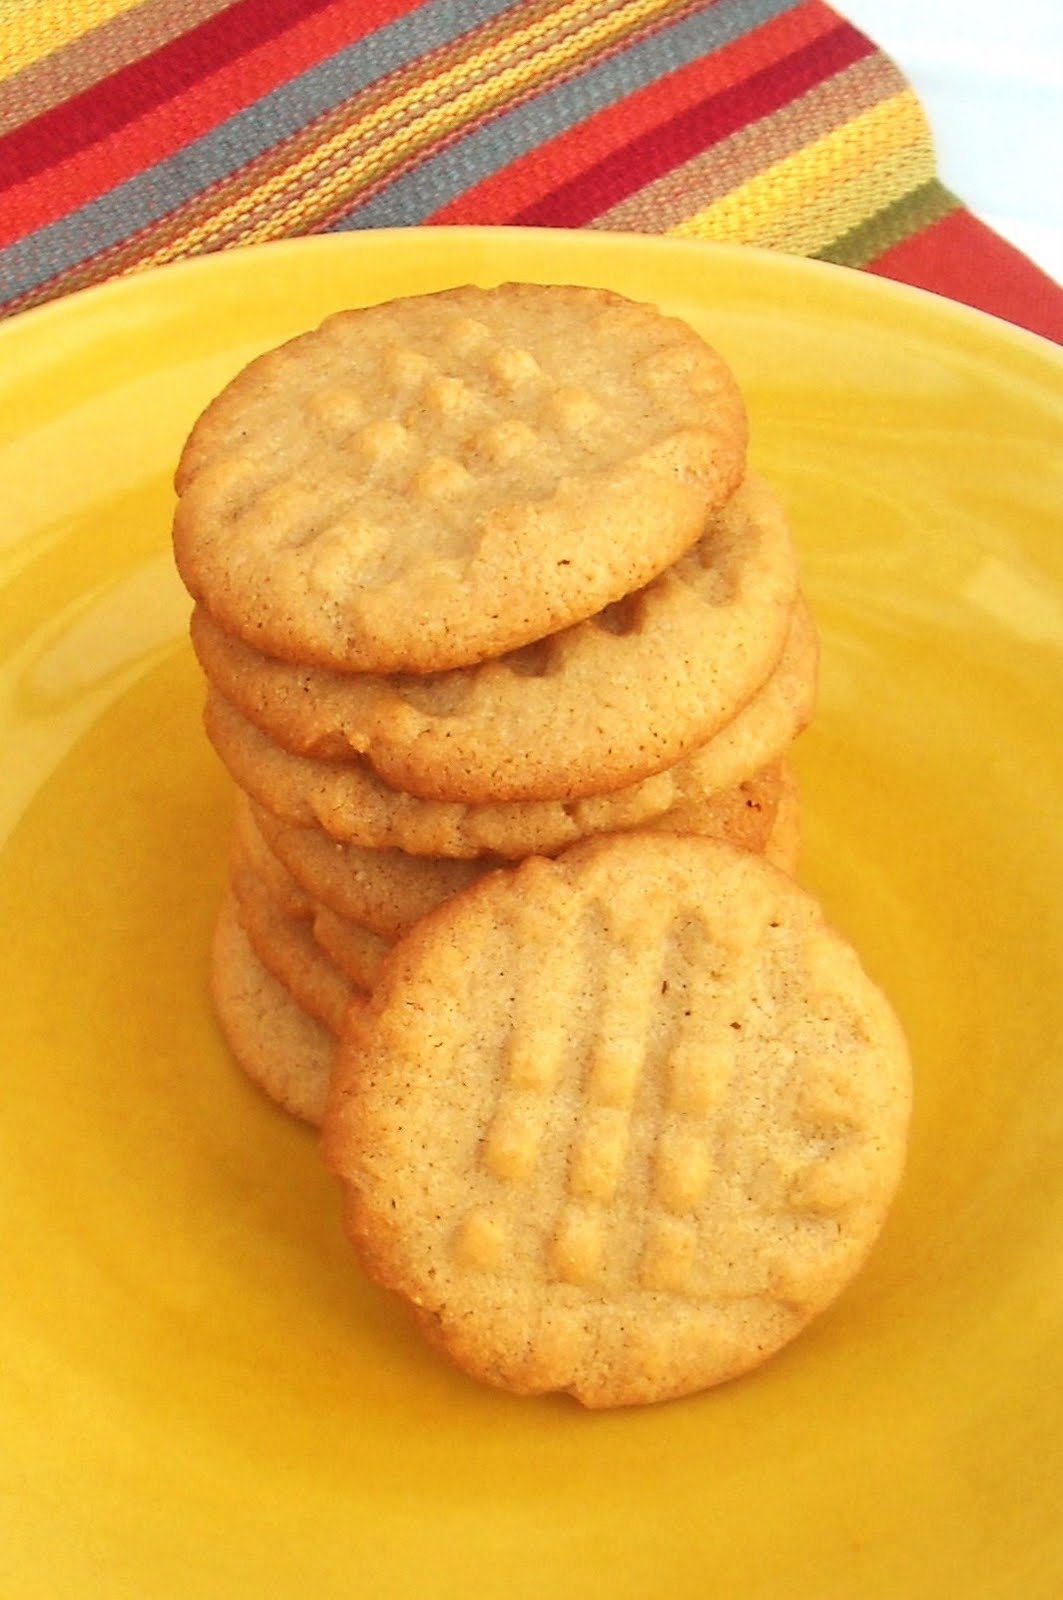 Folder Lock - File Lock and Encryption Software - Free Download Old fashioned rolled oats peanut butter cookies